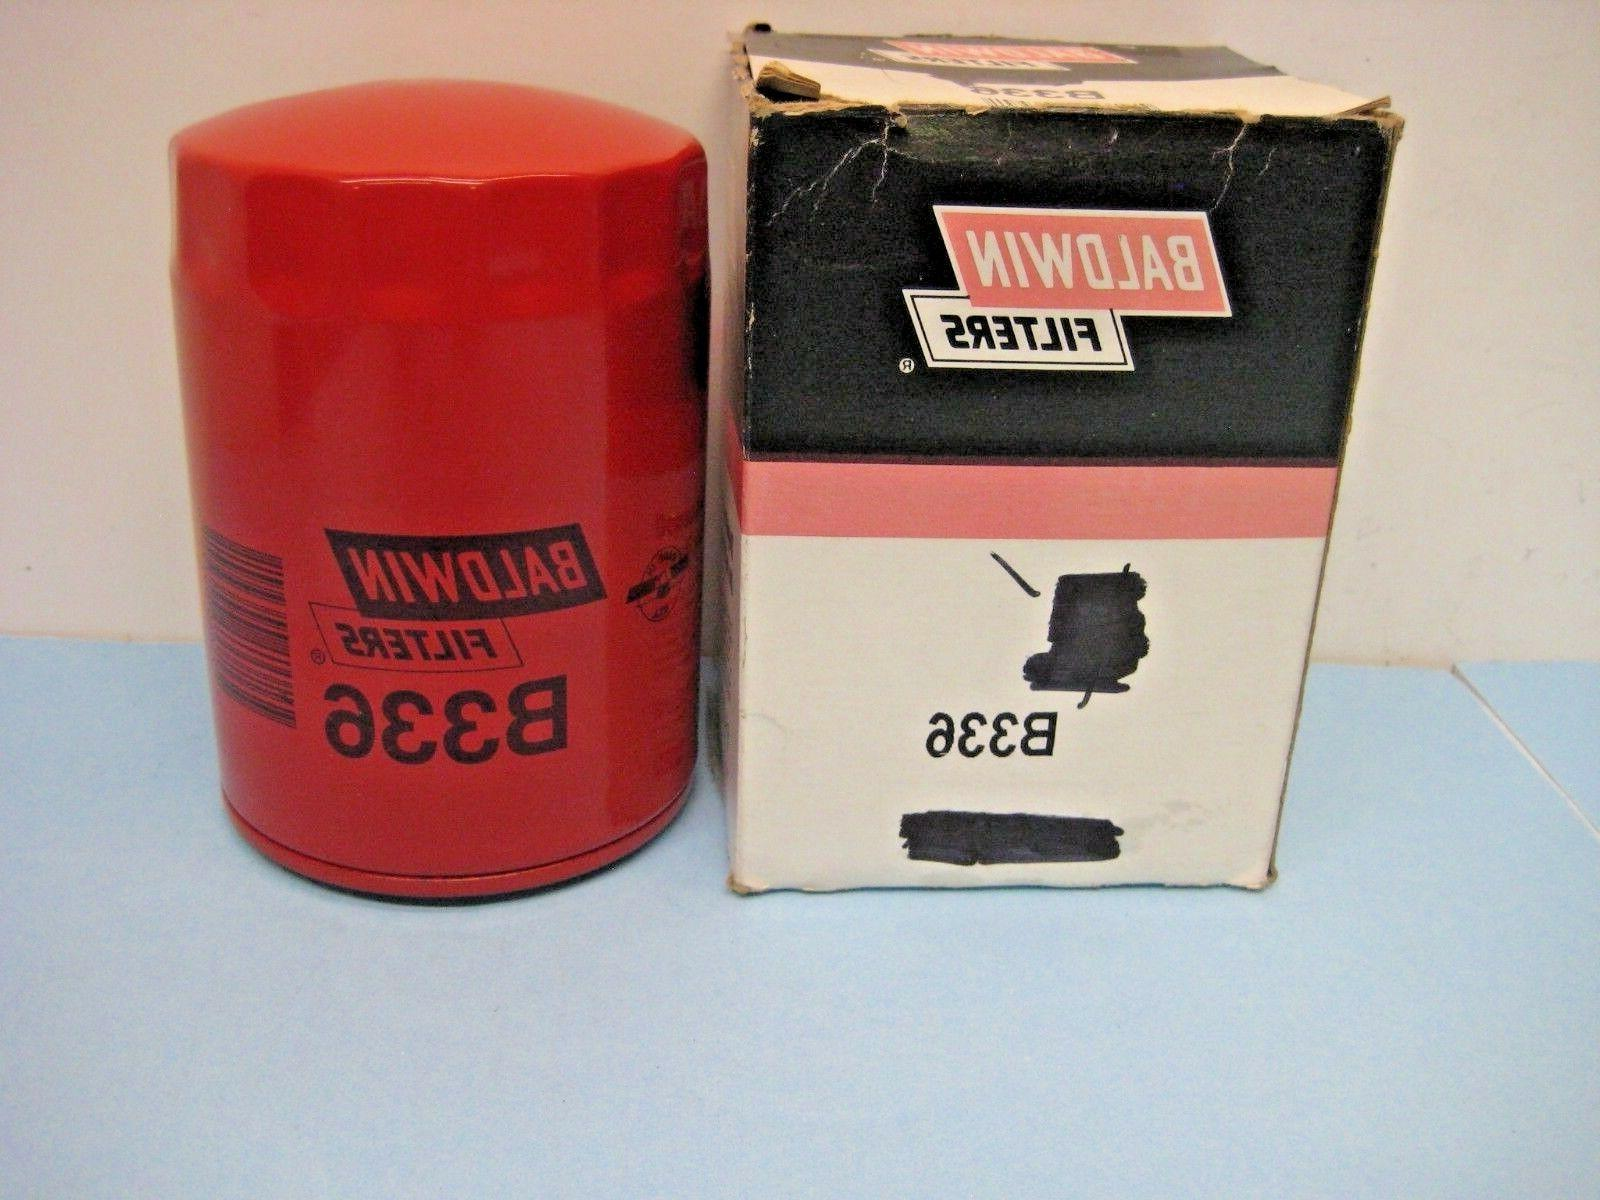 b336 oil filter free shipping